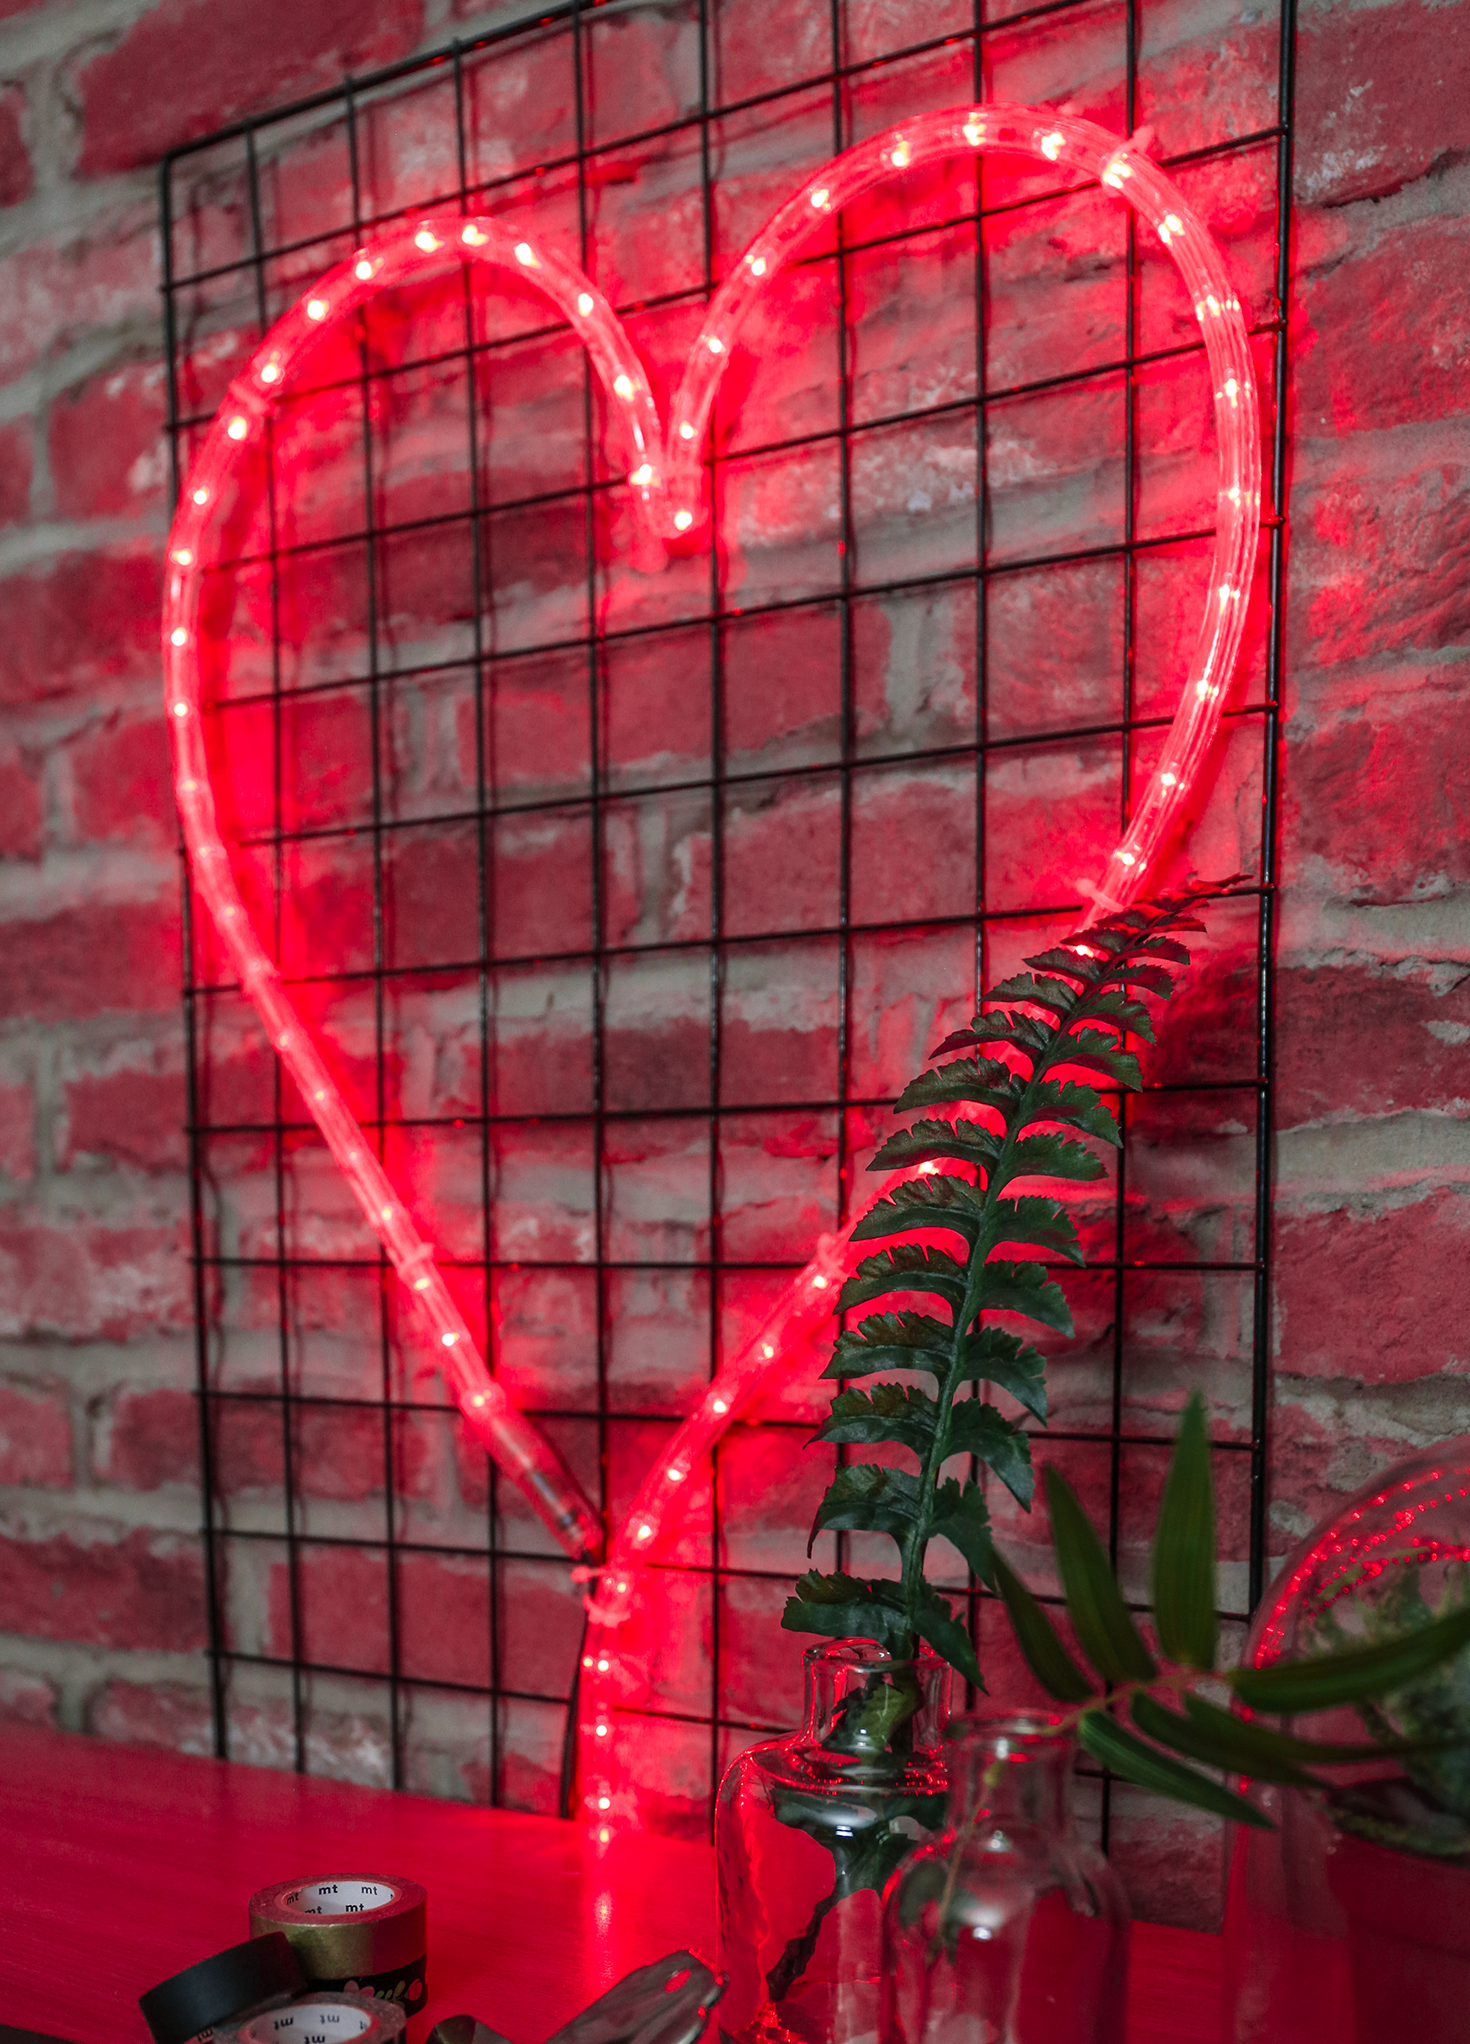 Rope Light Can Be Used To Create A Neon Effect Sign In Almost Any Shape We Love This Heart Shaped Design Neon Led Rope Lights Rope Light How To Make Light